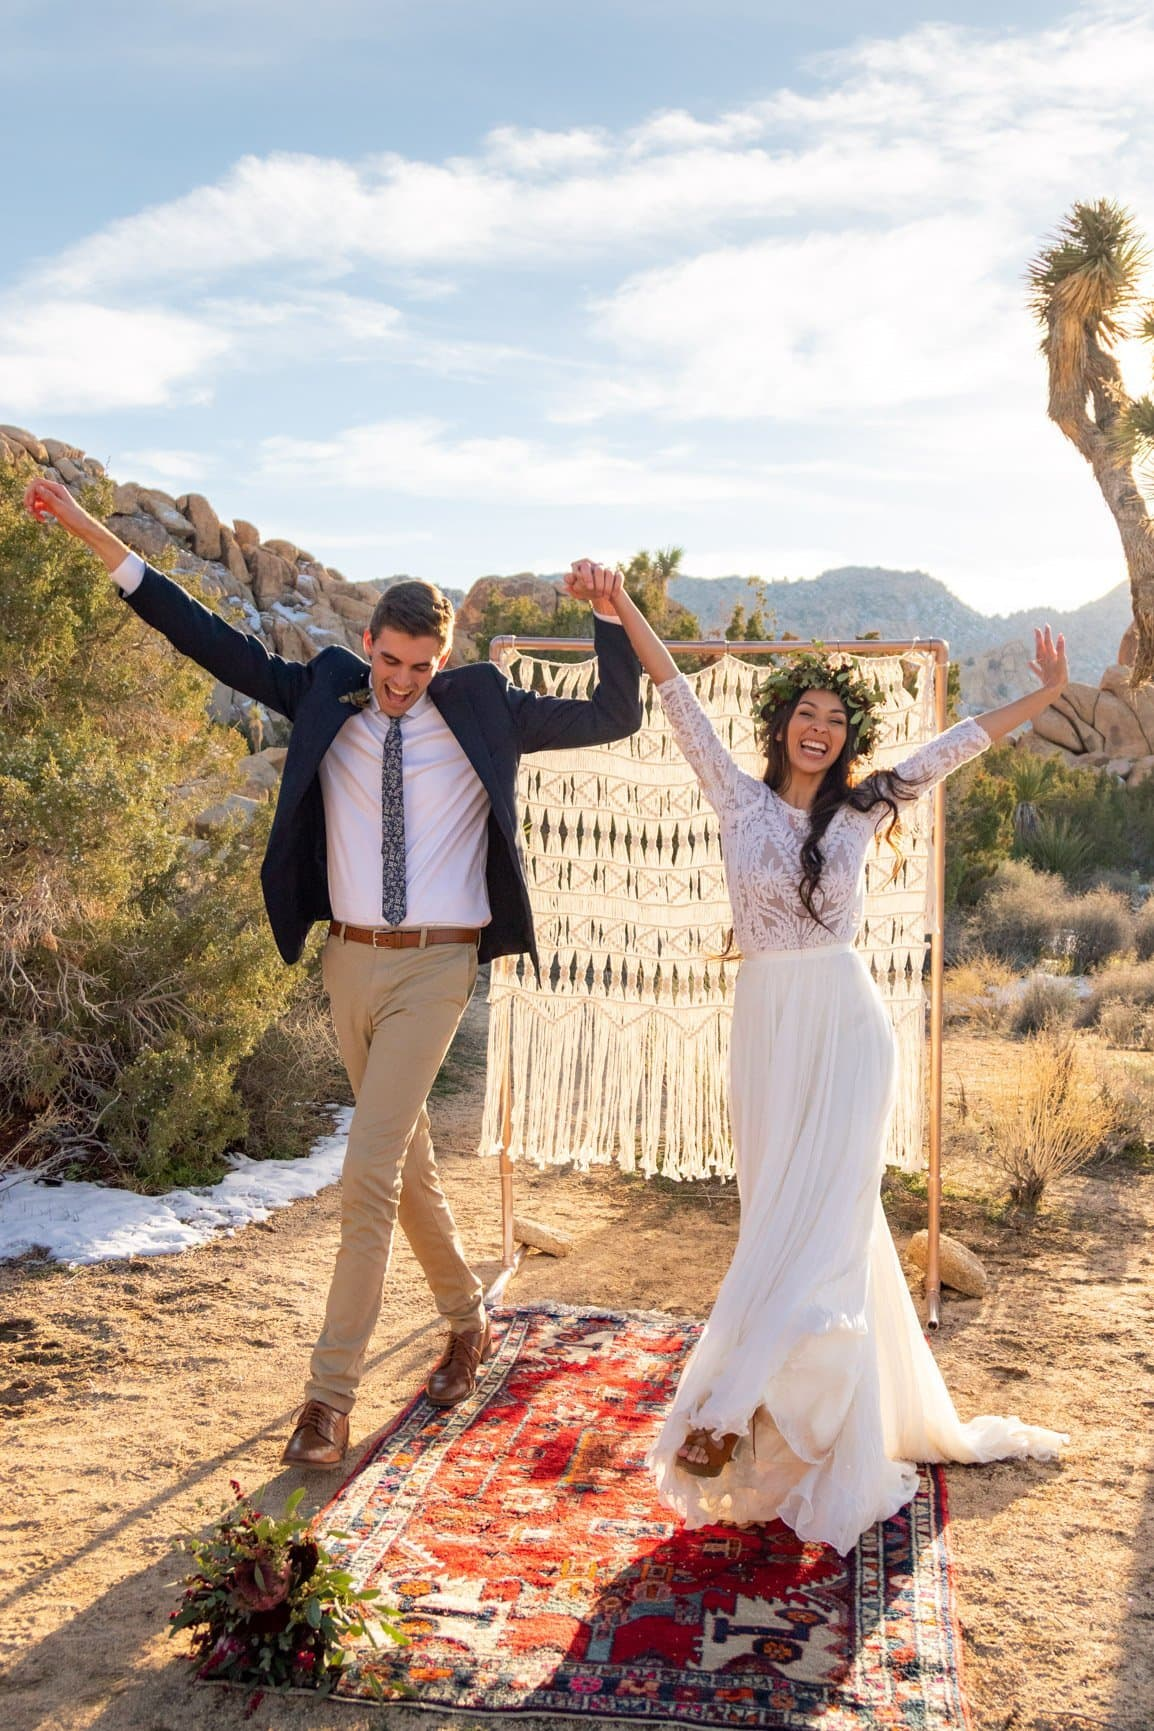 newlyweds celebrate their love in the desert